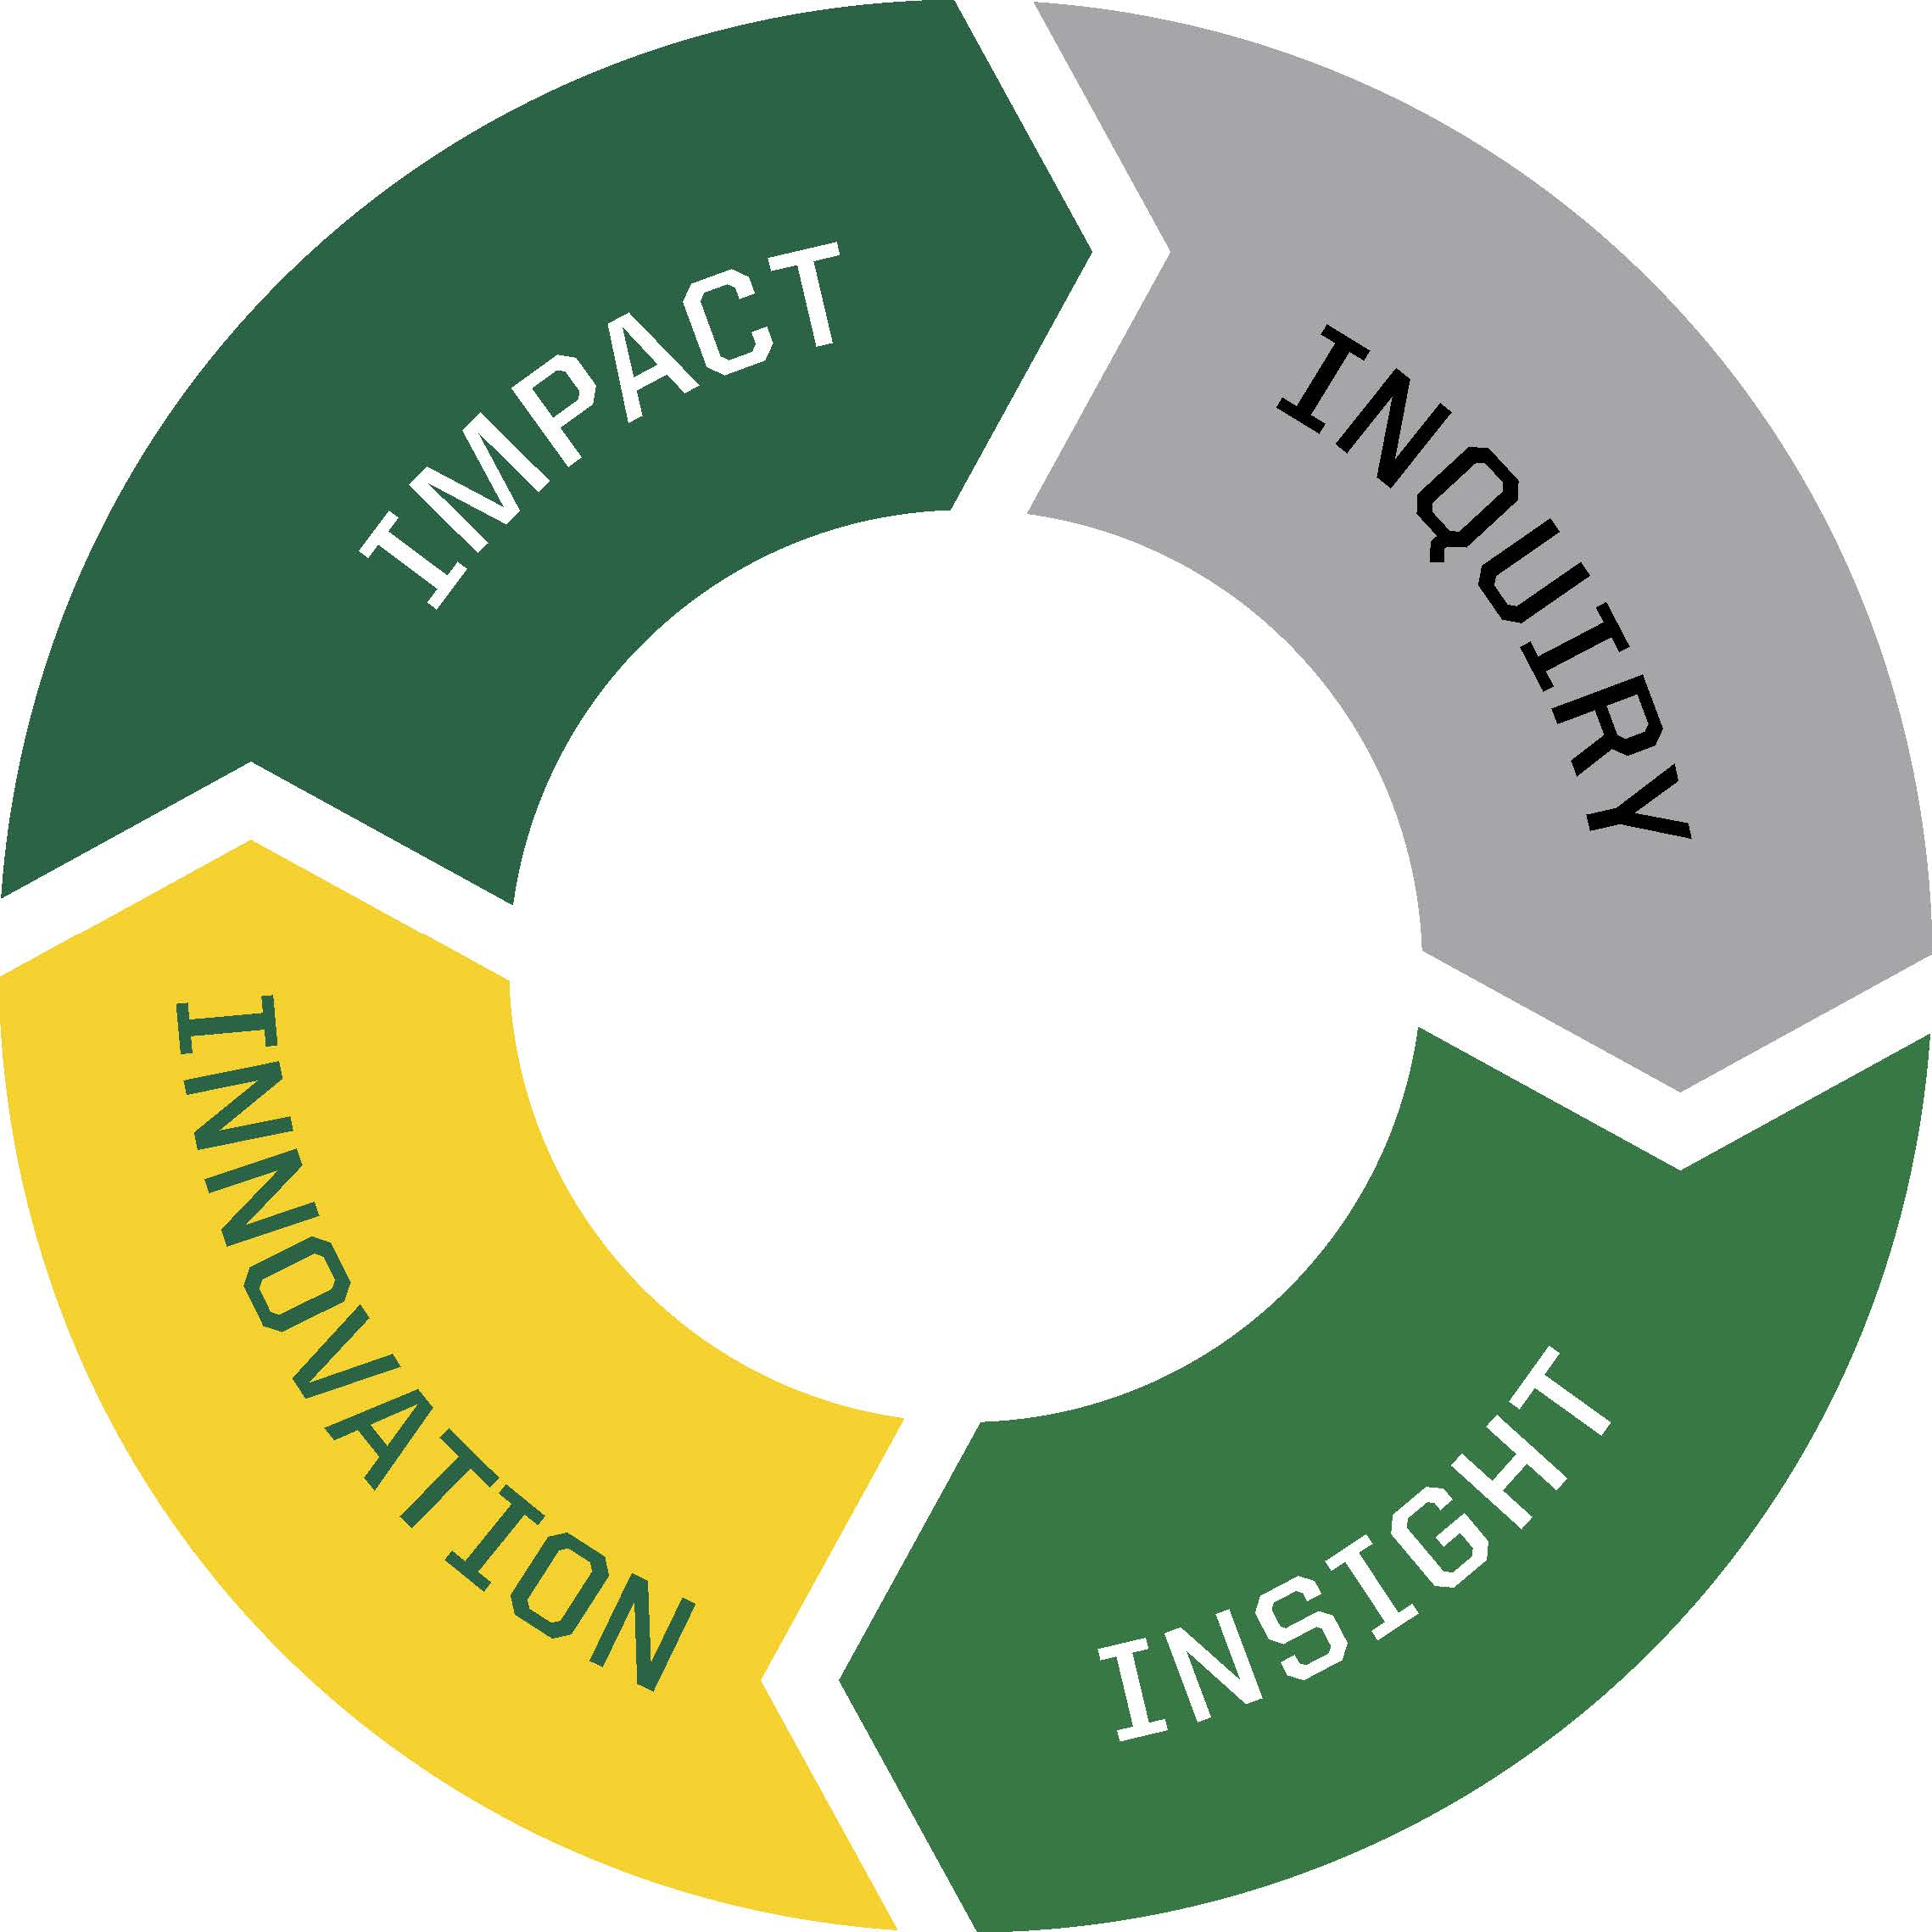 The Impact Cycle: Inquiry > Insight > Innovation > Impact